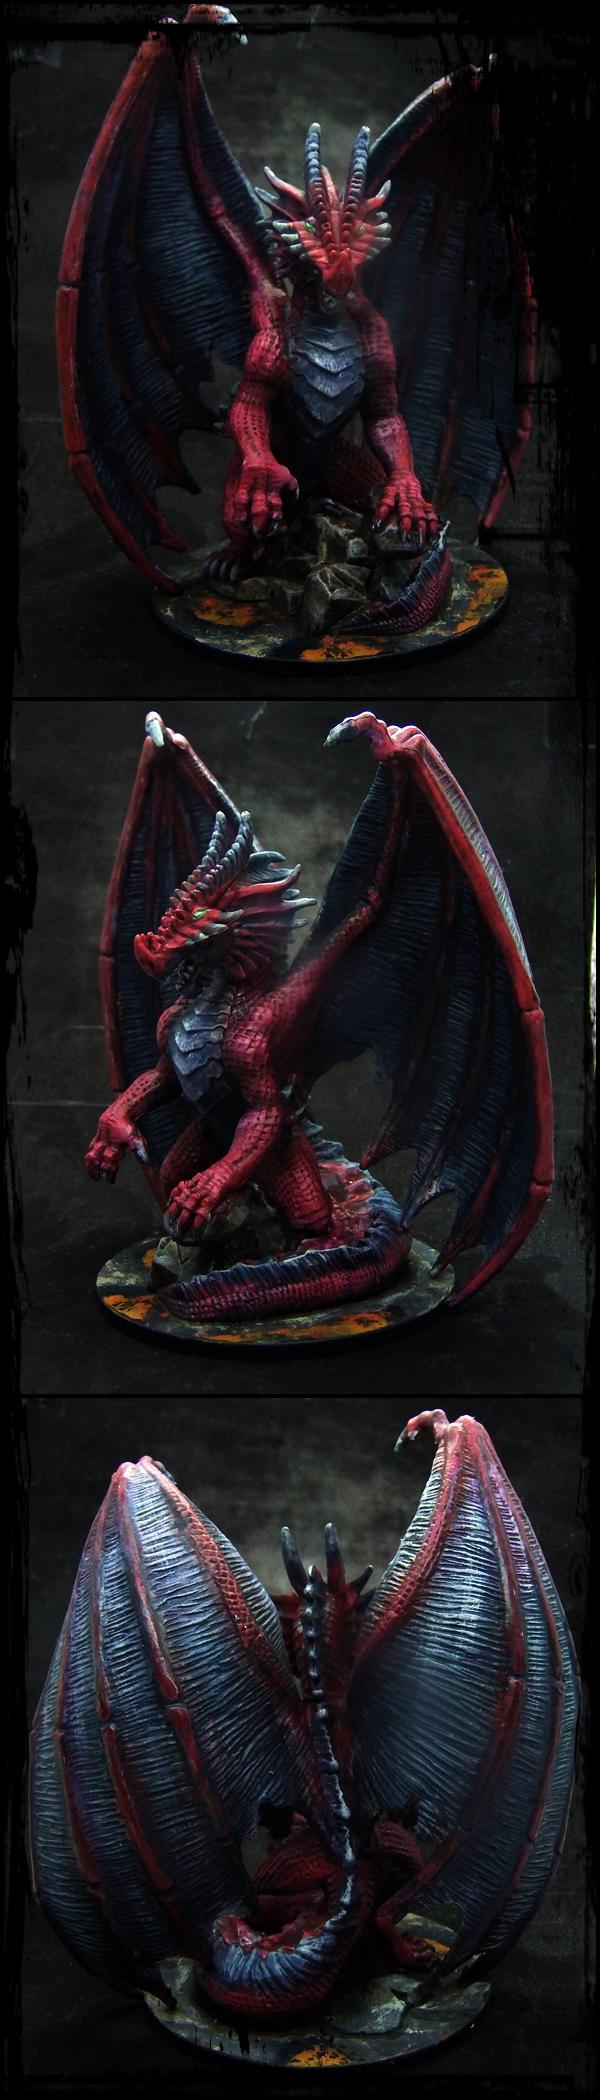 Ancient, Board Game, Dragon, Dungeons And Dragons, Pathfinders, Red Dragon